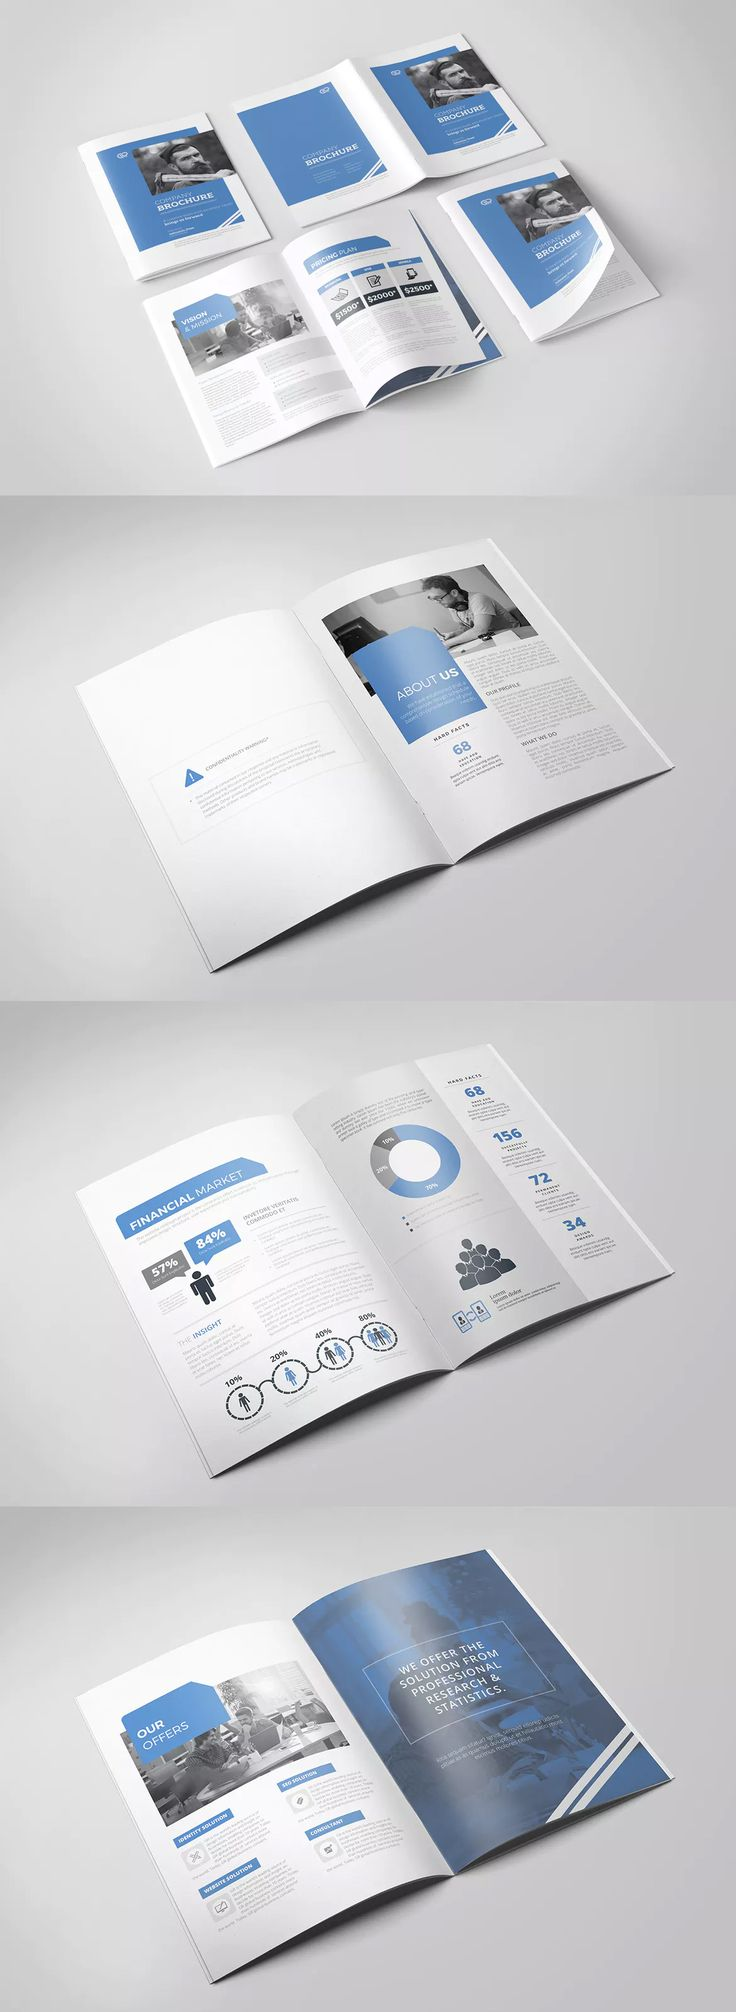 Company Profile Template InDesign INDD - US Letter Size and A4